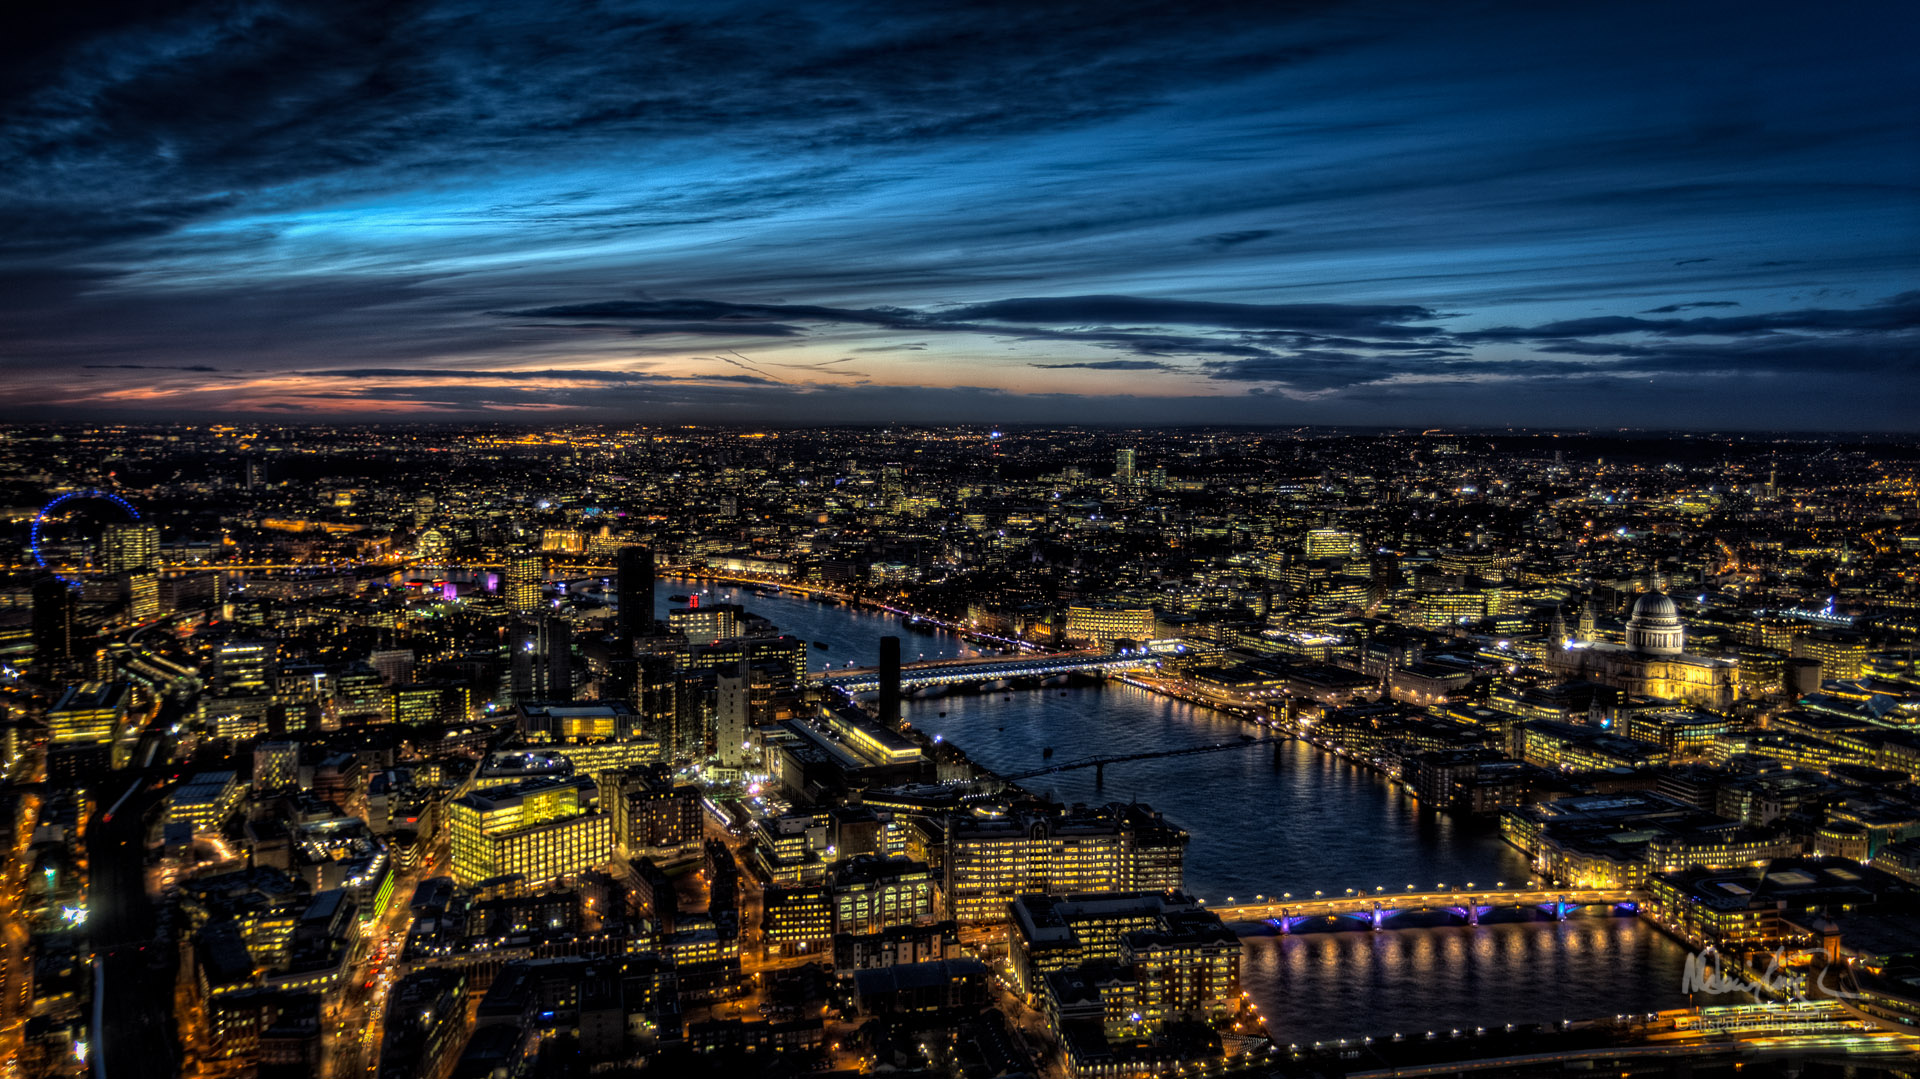 The View from The Shard, Looking West